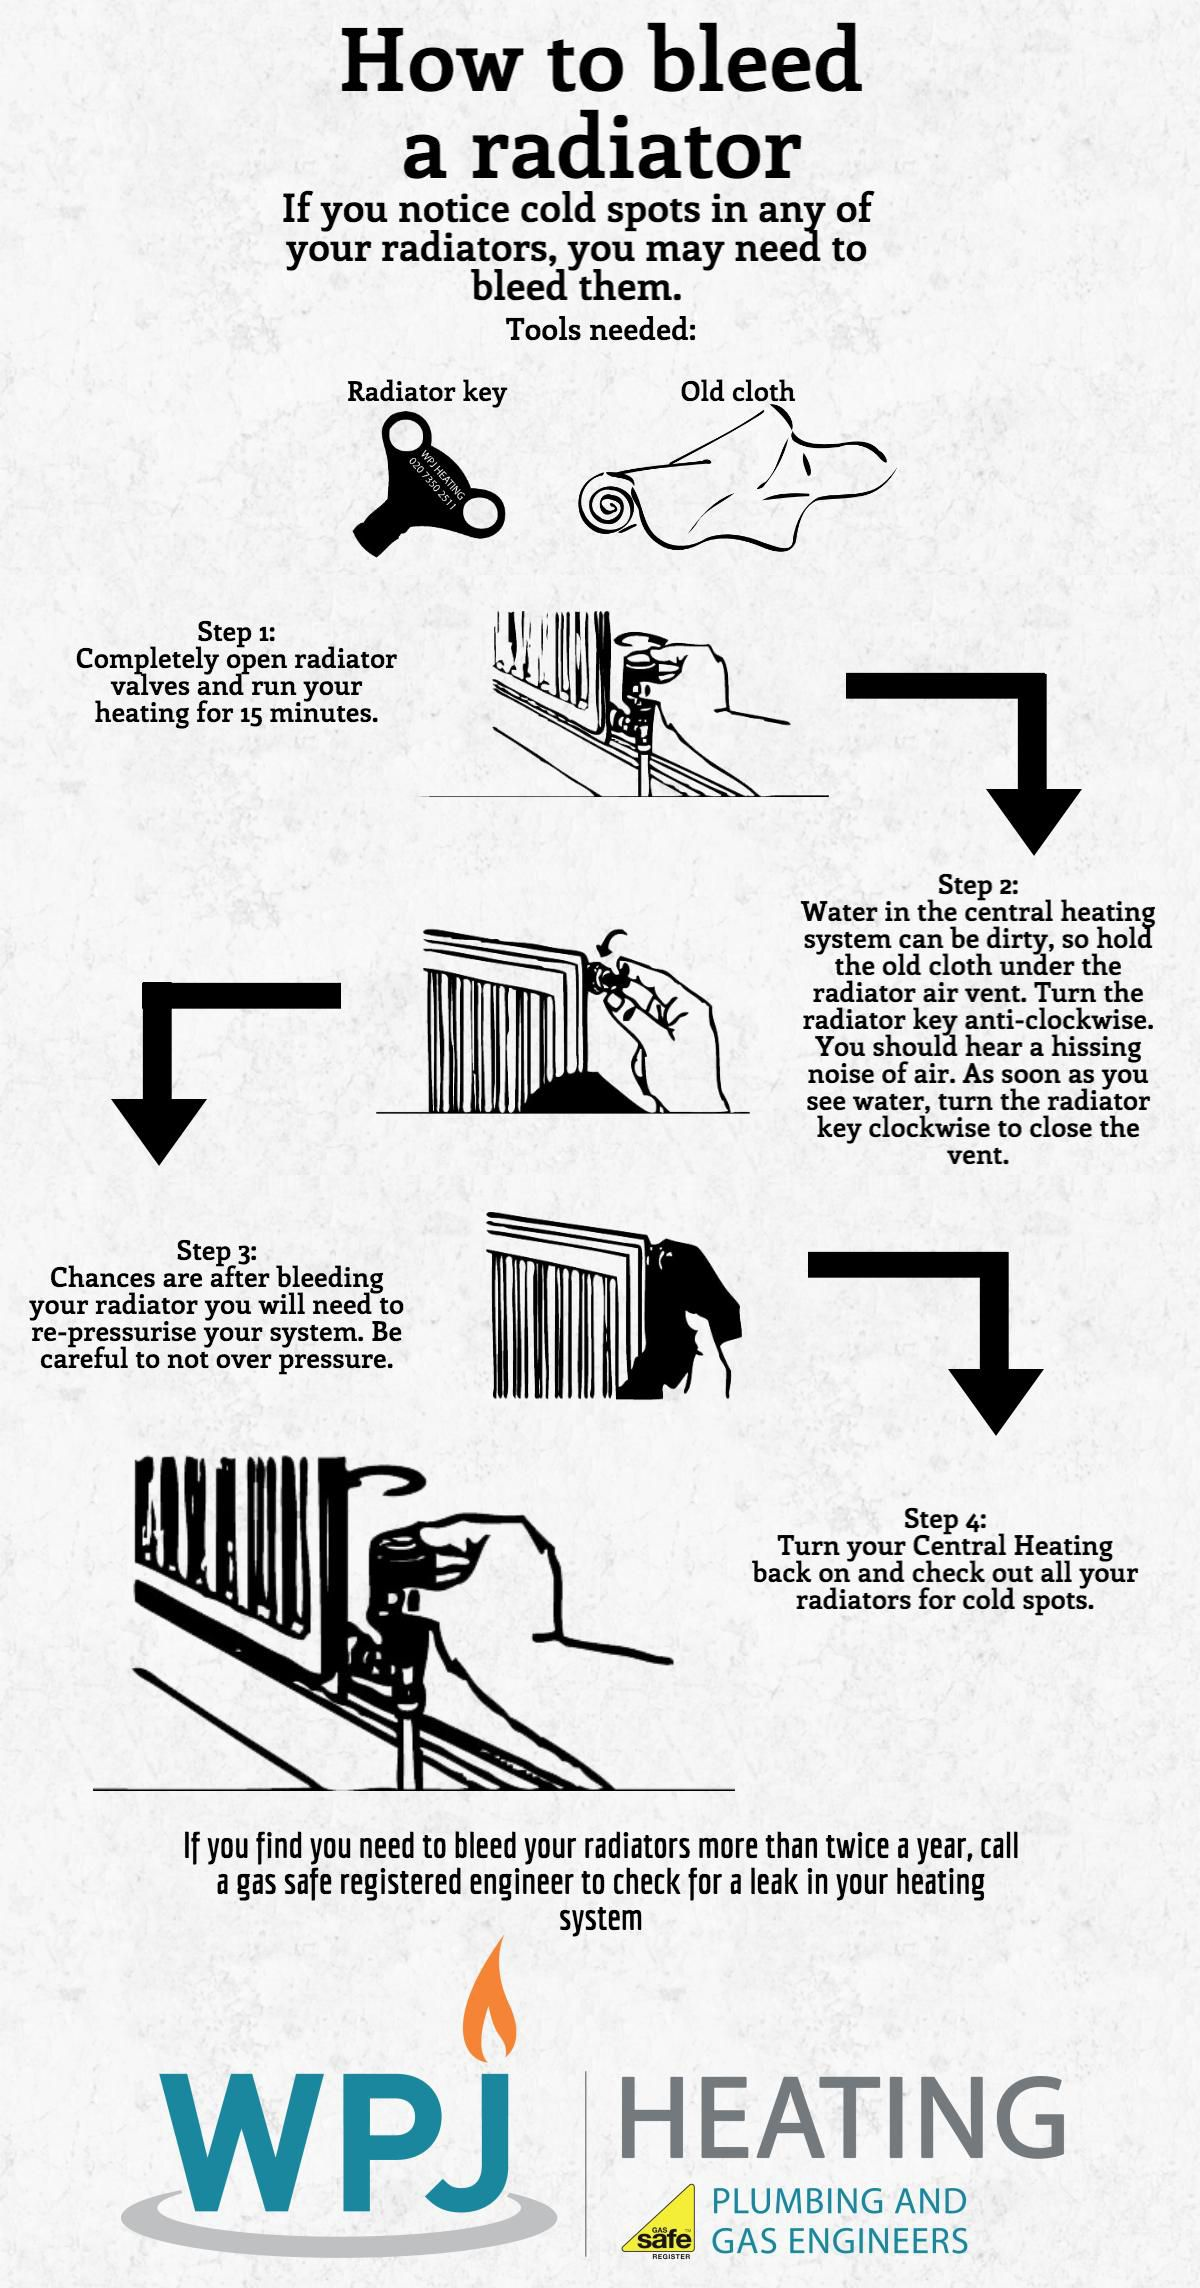 4 Easy Steps To Bleed Your Radiator Hints Tips Diy Plumbing Infographic Heating Services Boiler Installation Plumbing